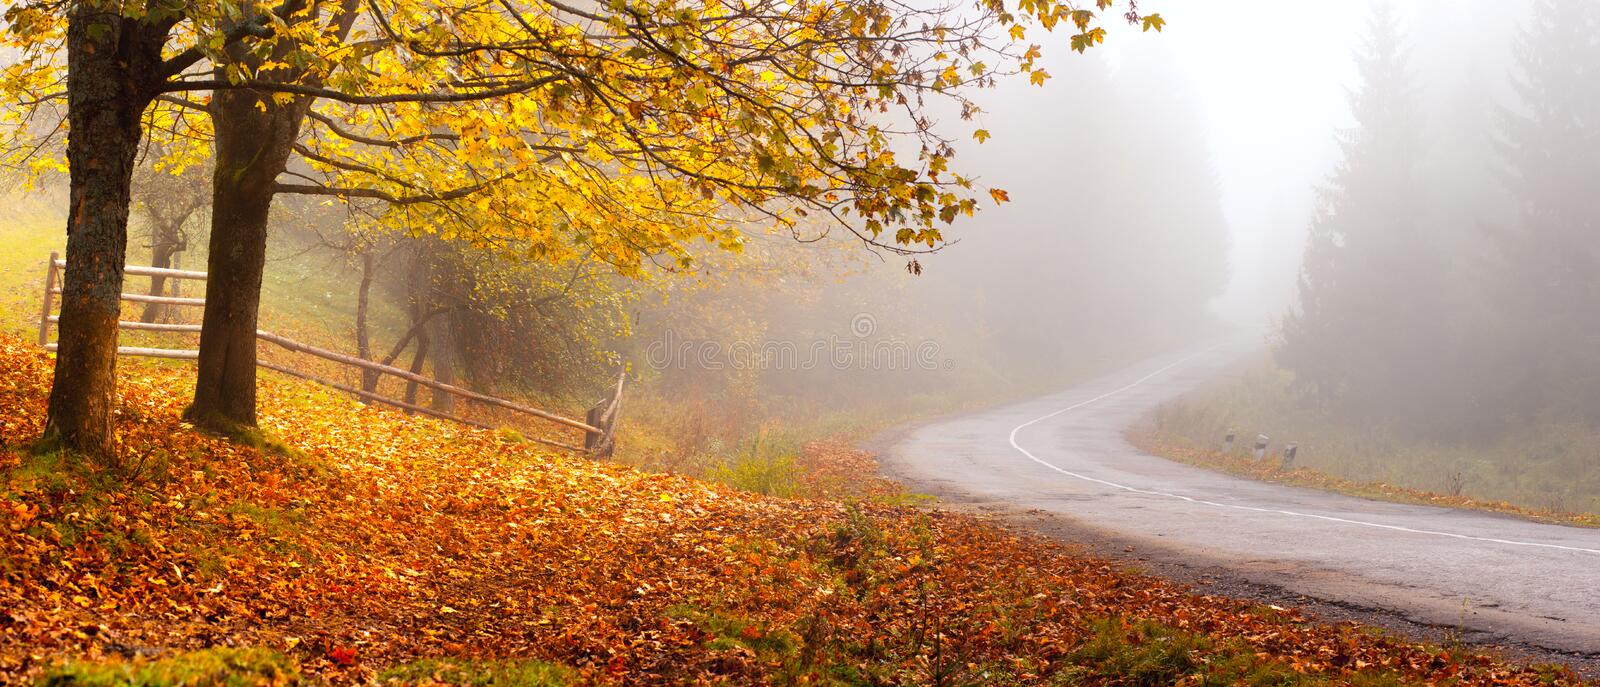 Autumn road. Autumnal landscape with mist over road royalty free stock images